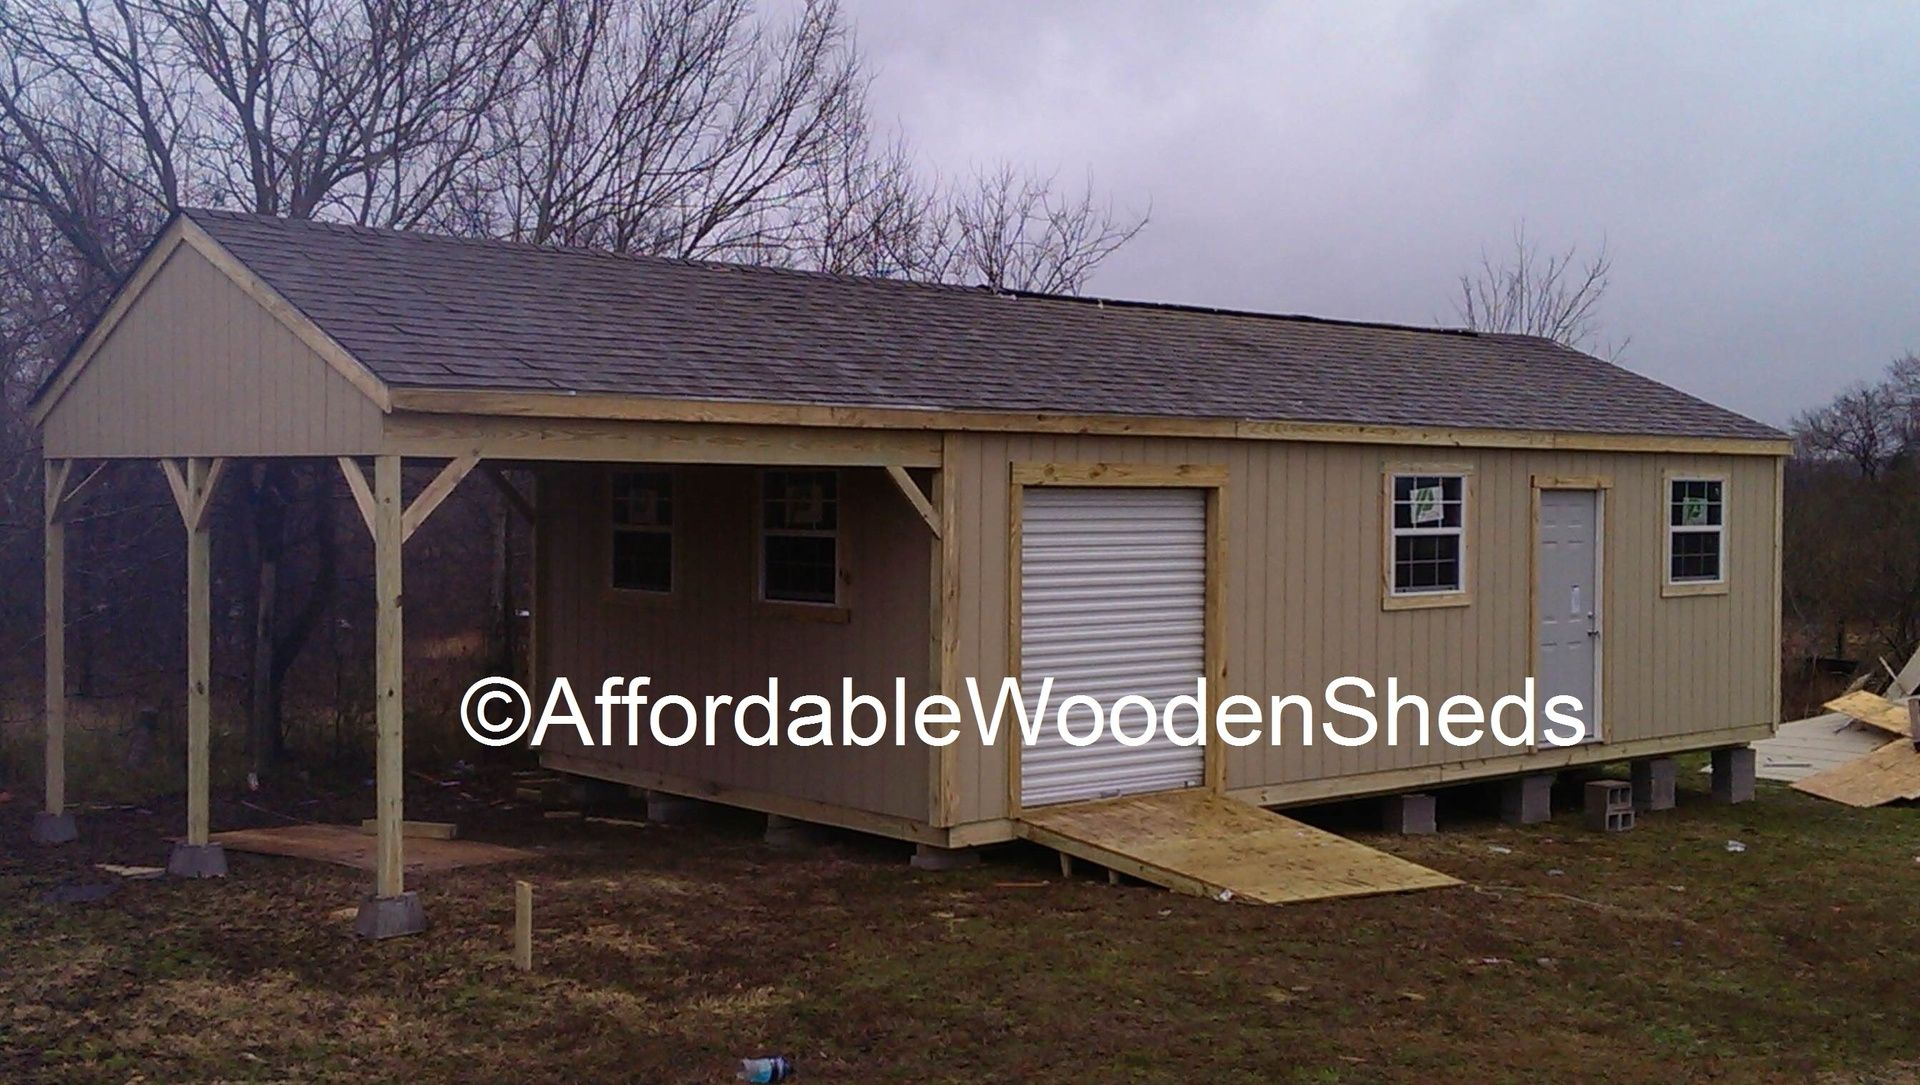 joblr fl melbourne info of sheds austin carports texas affordable